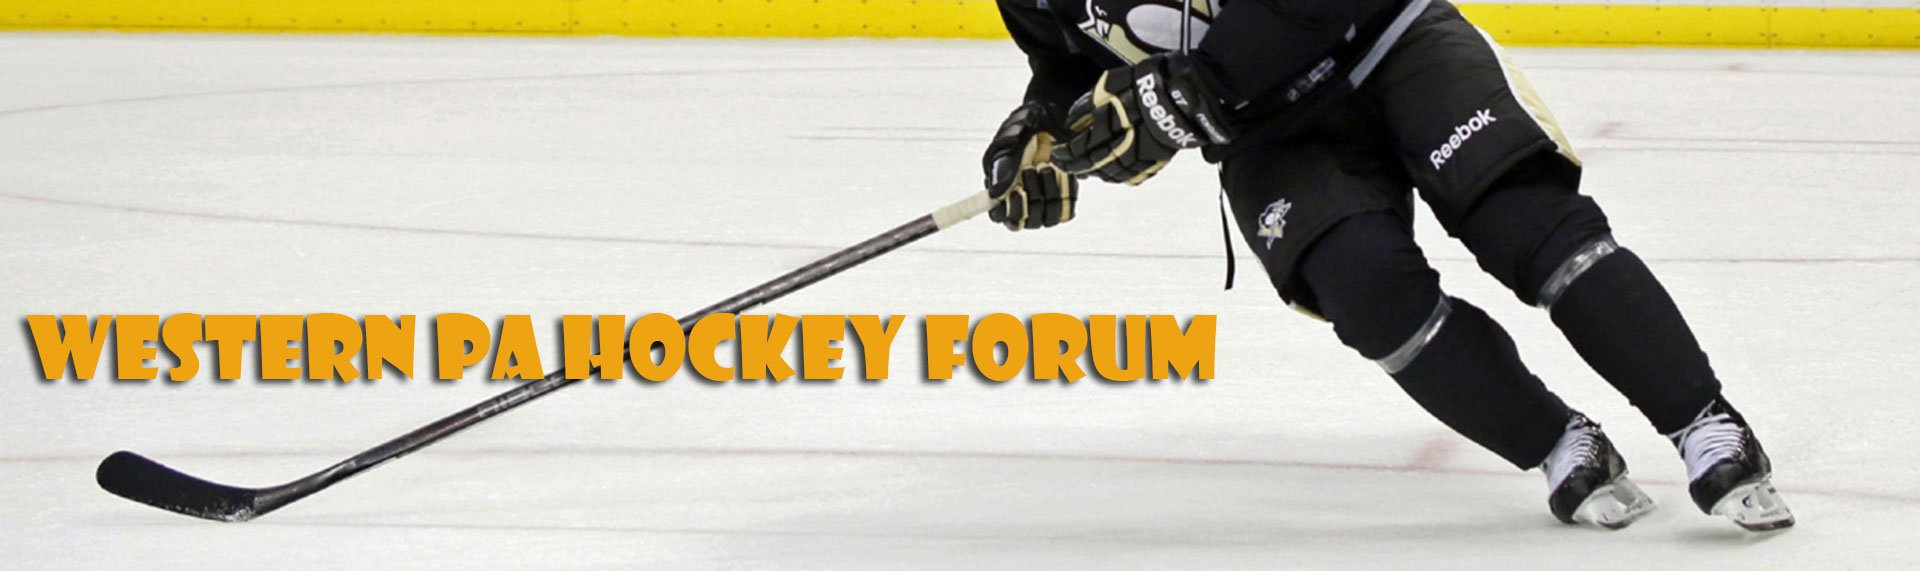 Western PA Hockey Forum